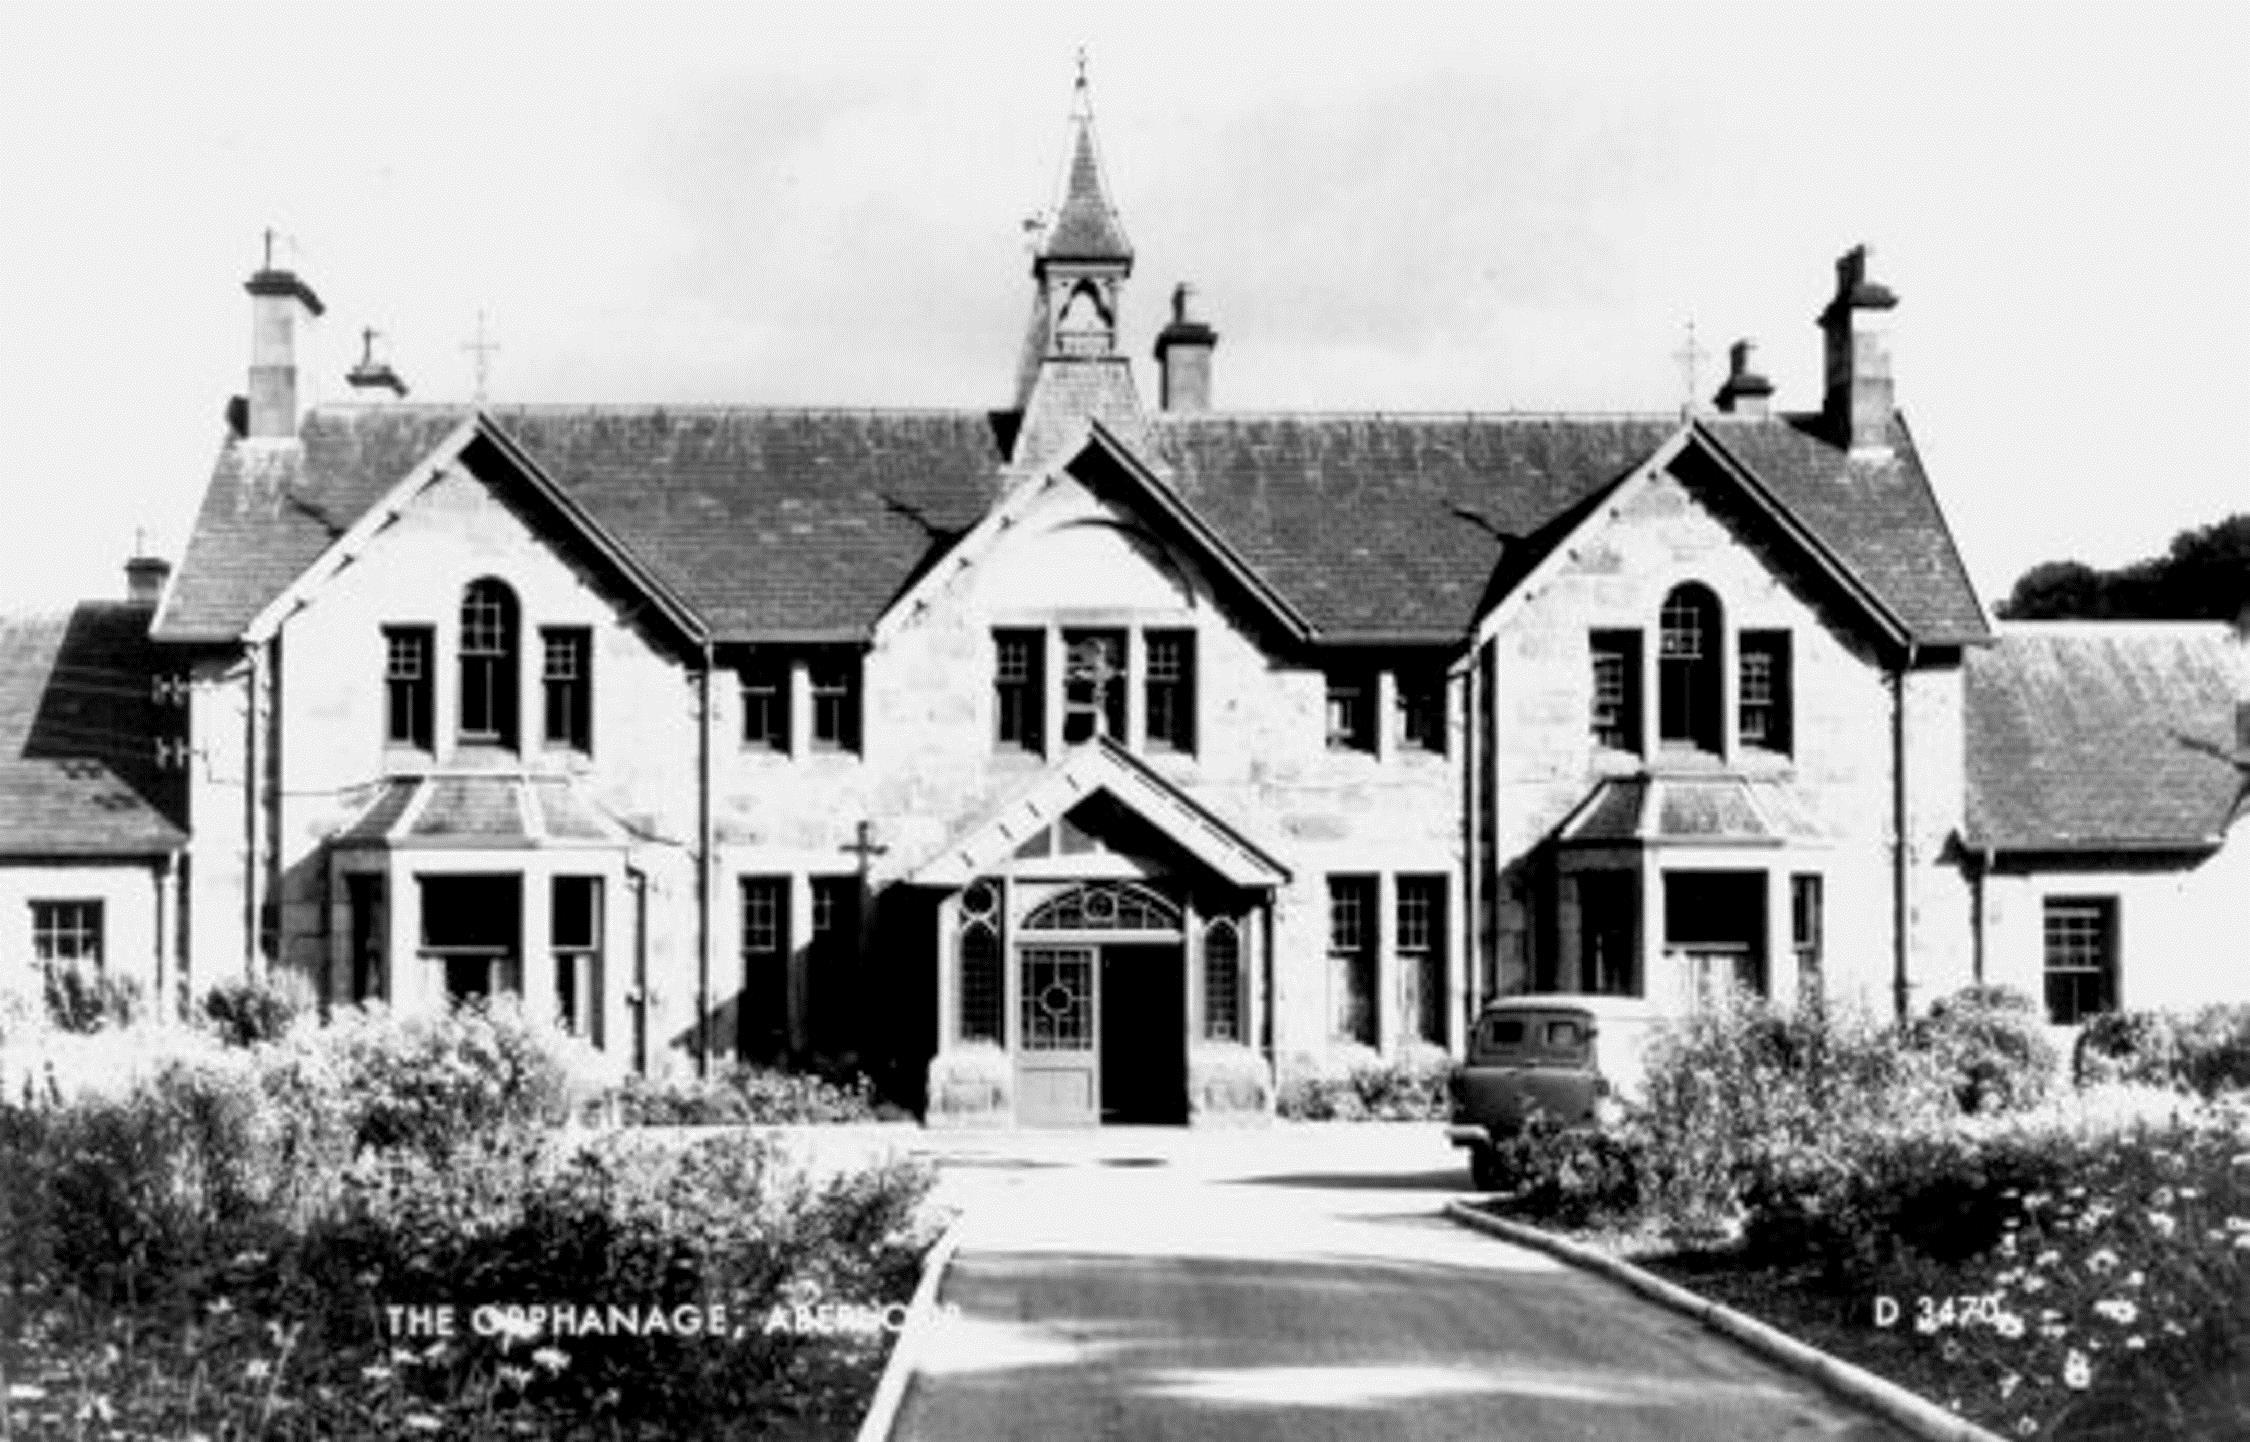 Aberlour Orphanage is just one of the organisations to be investigated.